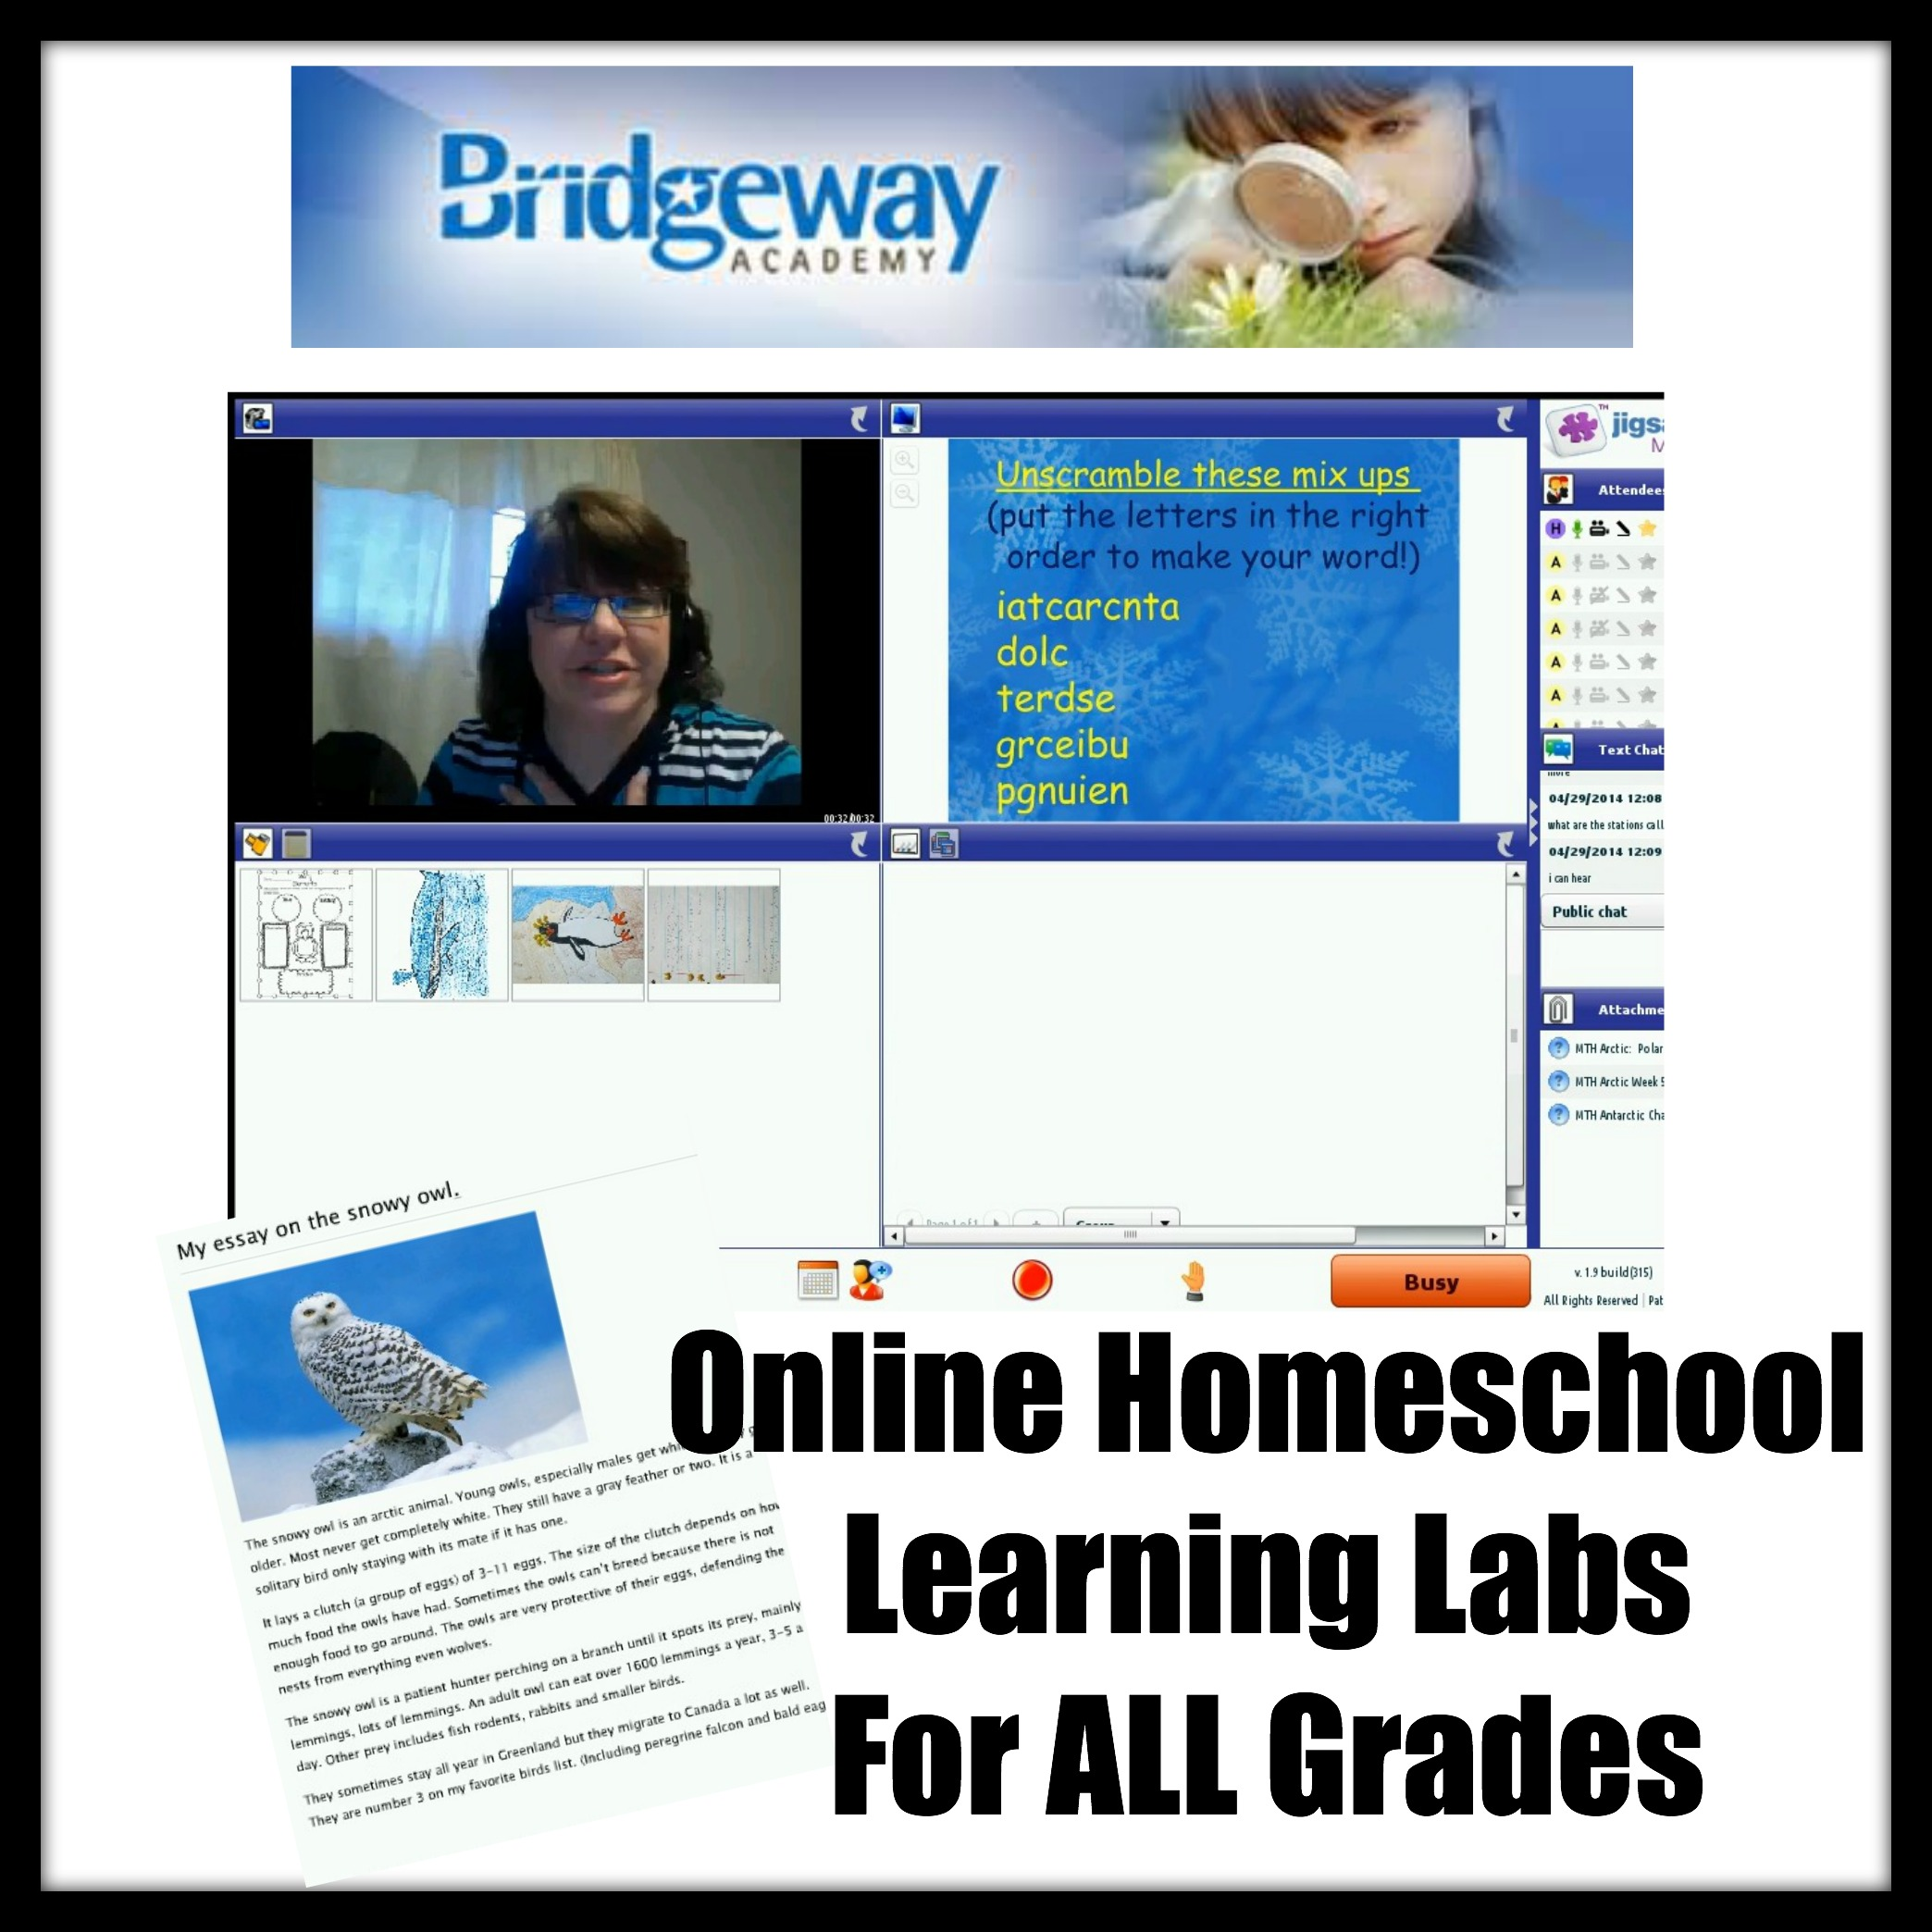 Online Homeschool Classes with Bridgeway Academy